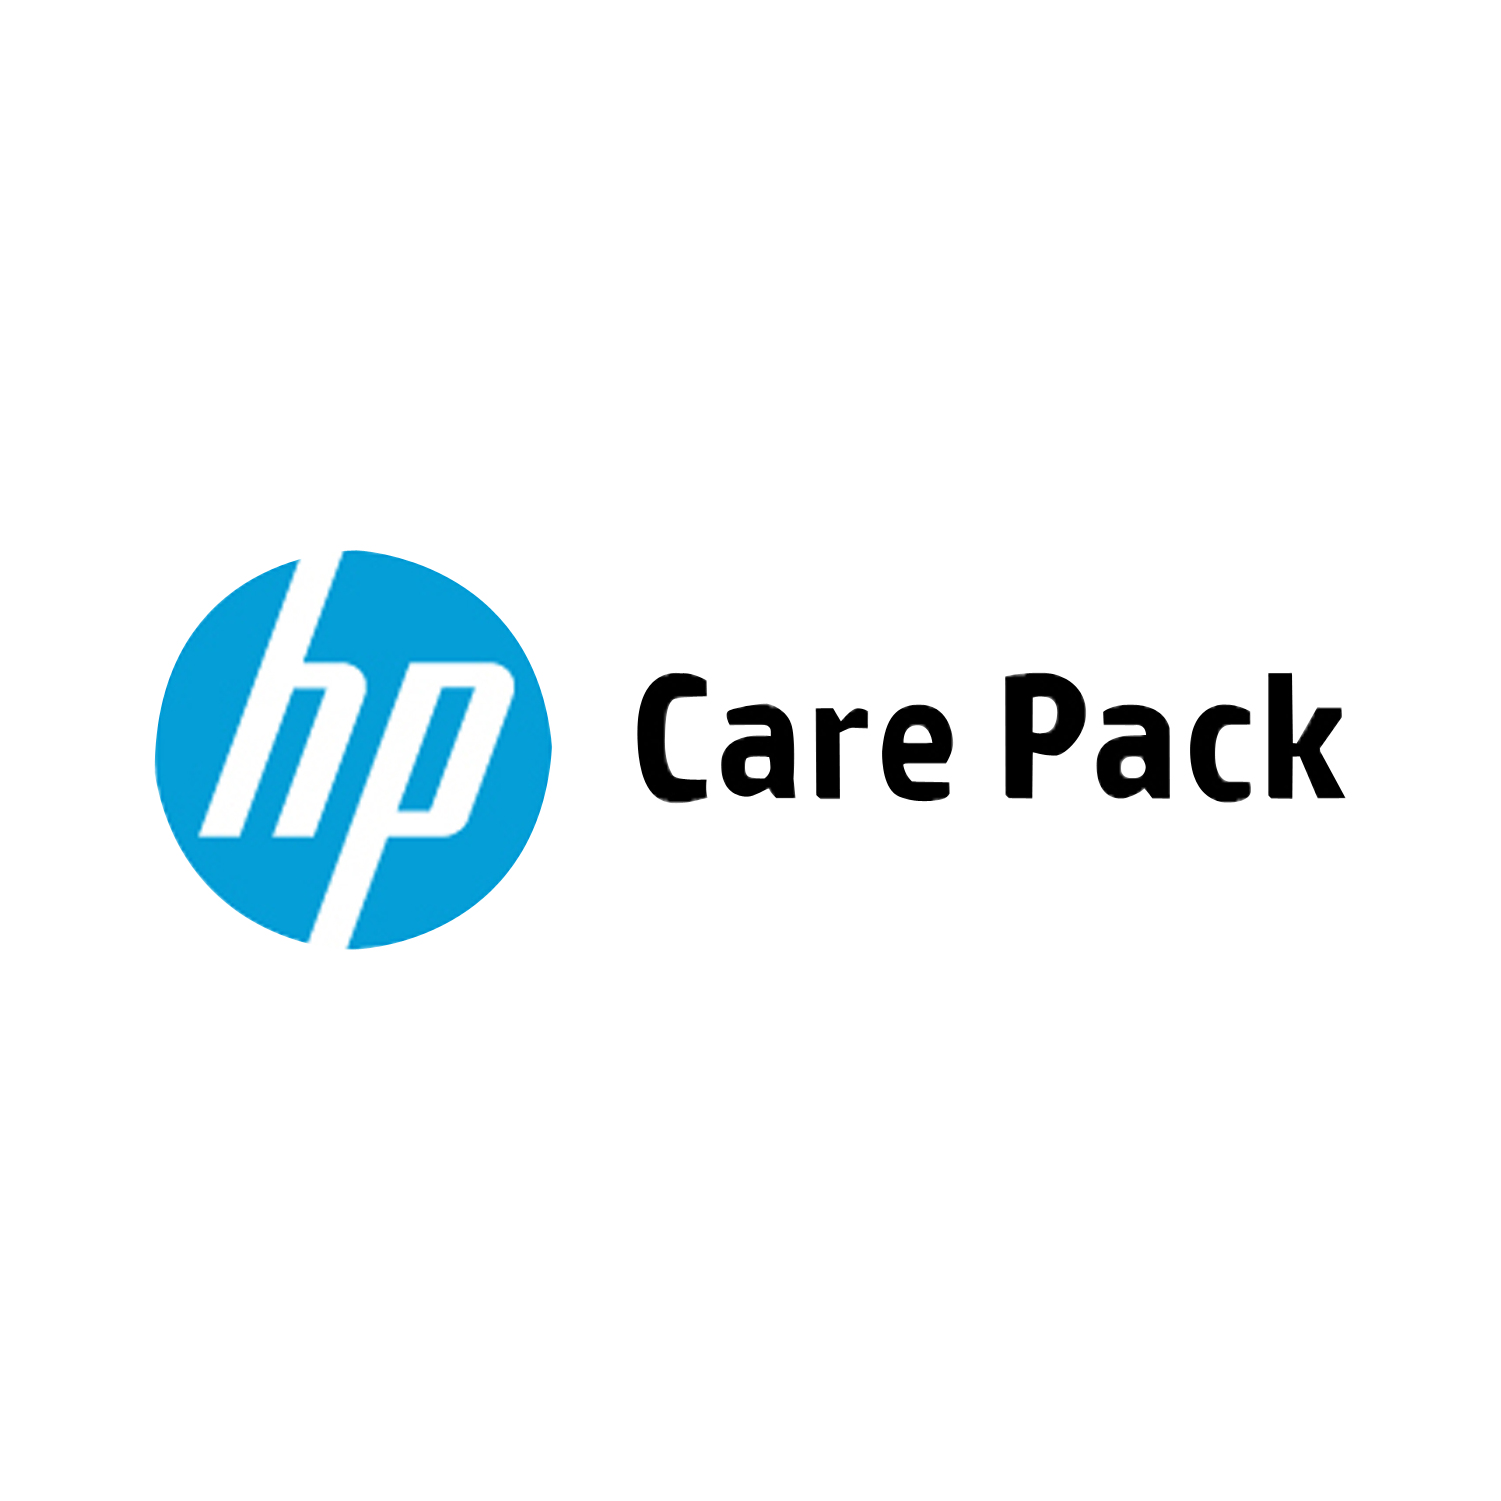 HP 1yPWChnlRmtPrt DsnjtL28500-104in Supp